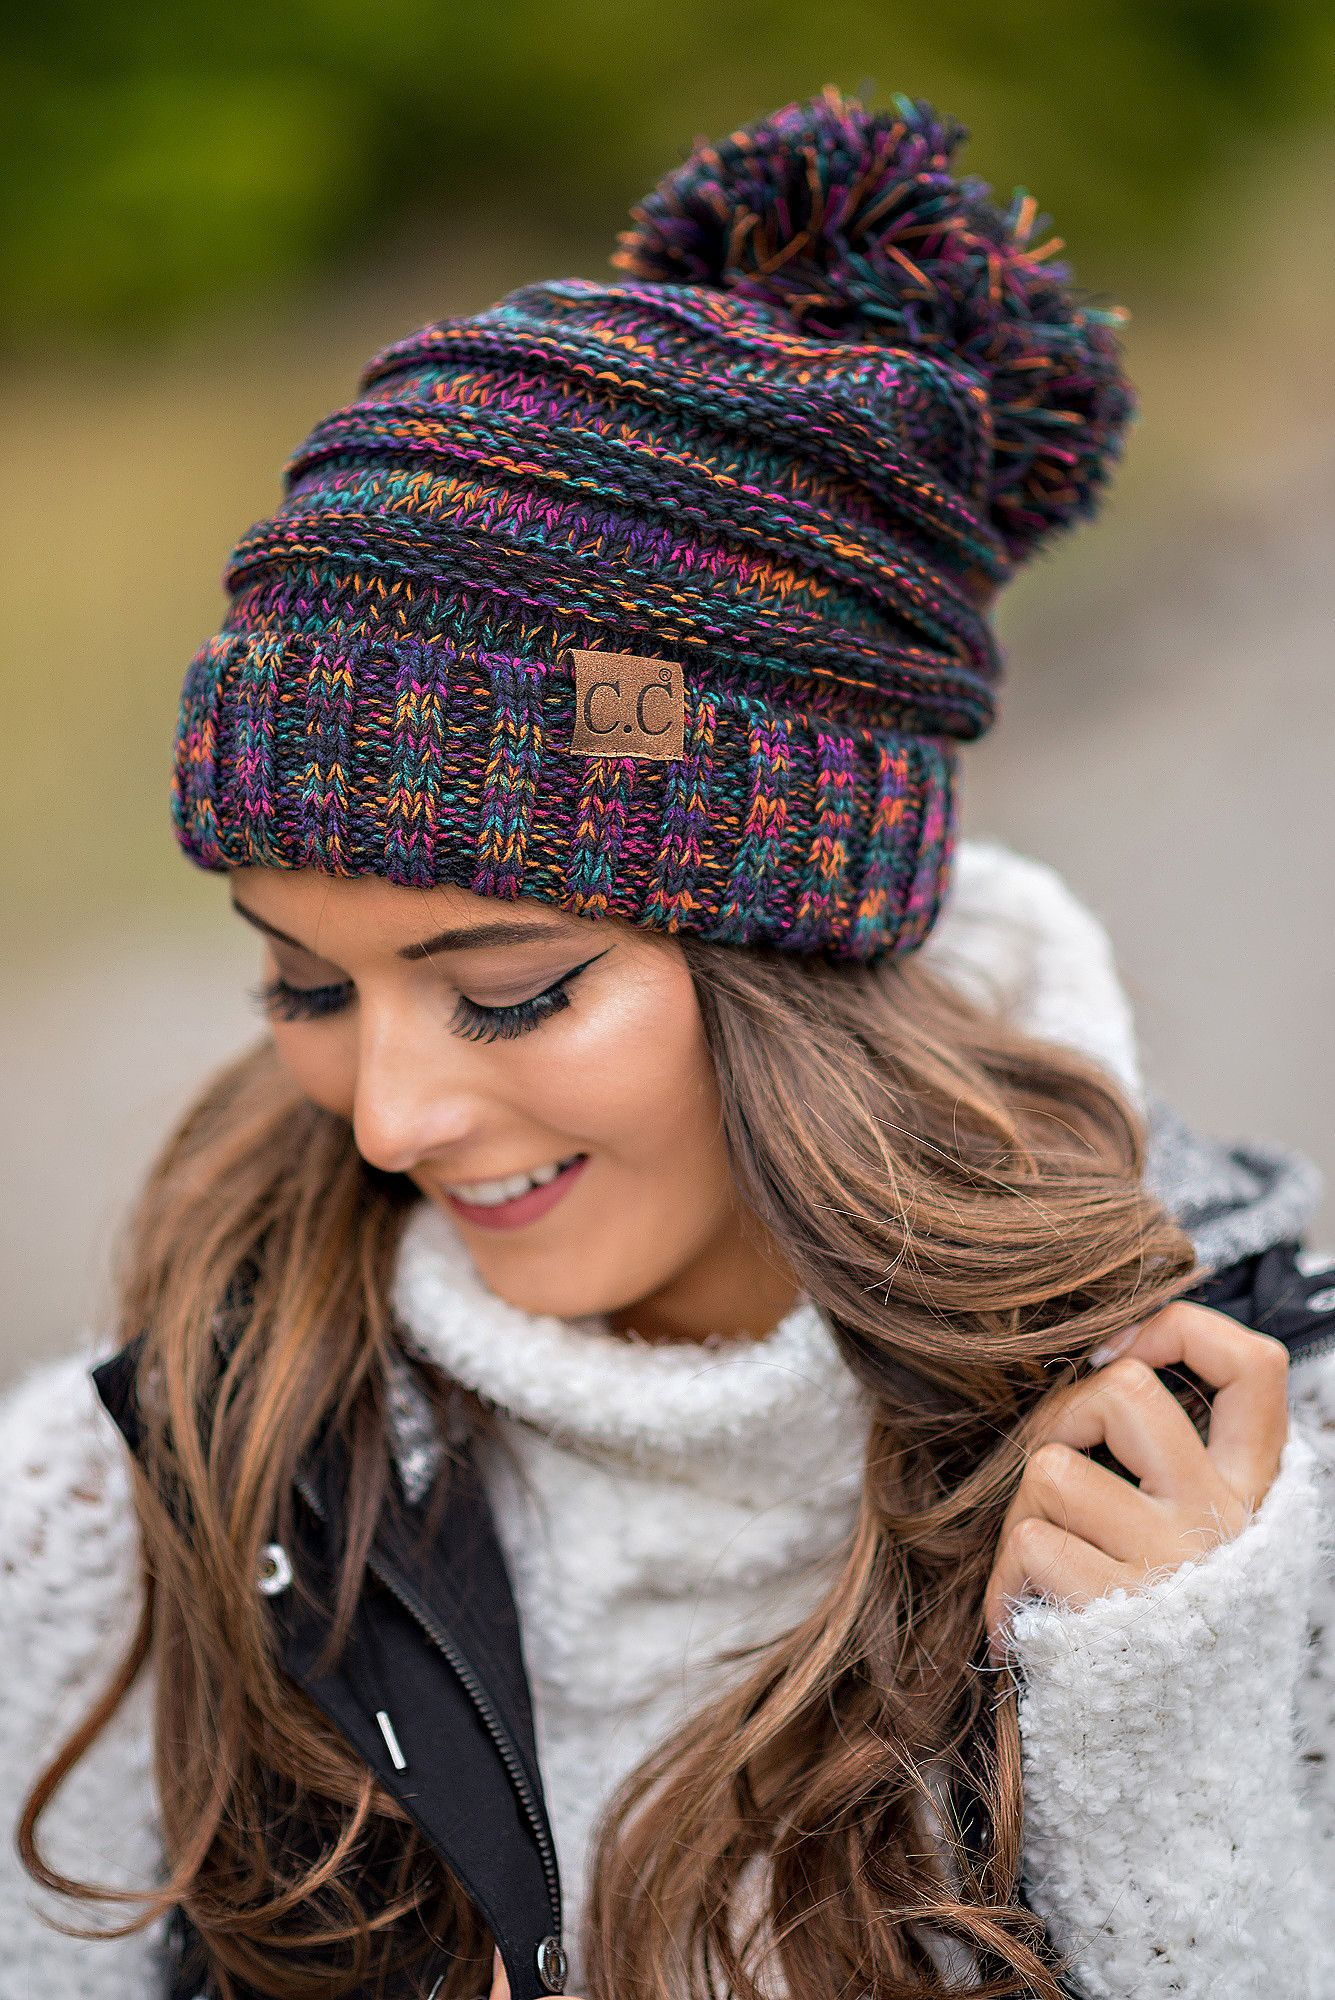 58805df03d3 CC Knit Fold Over Pom Beanie (Black   Multi) - NanaMacs.com - 3 ...